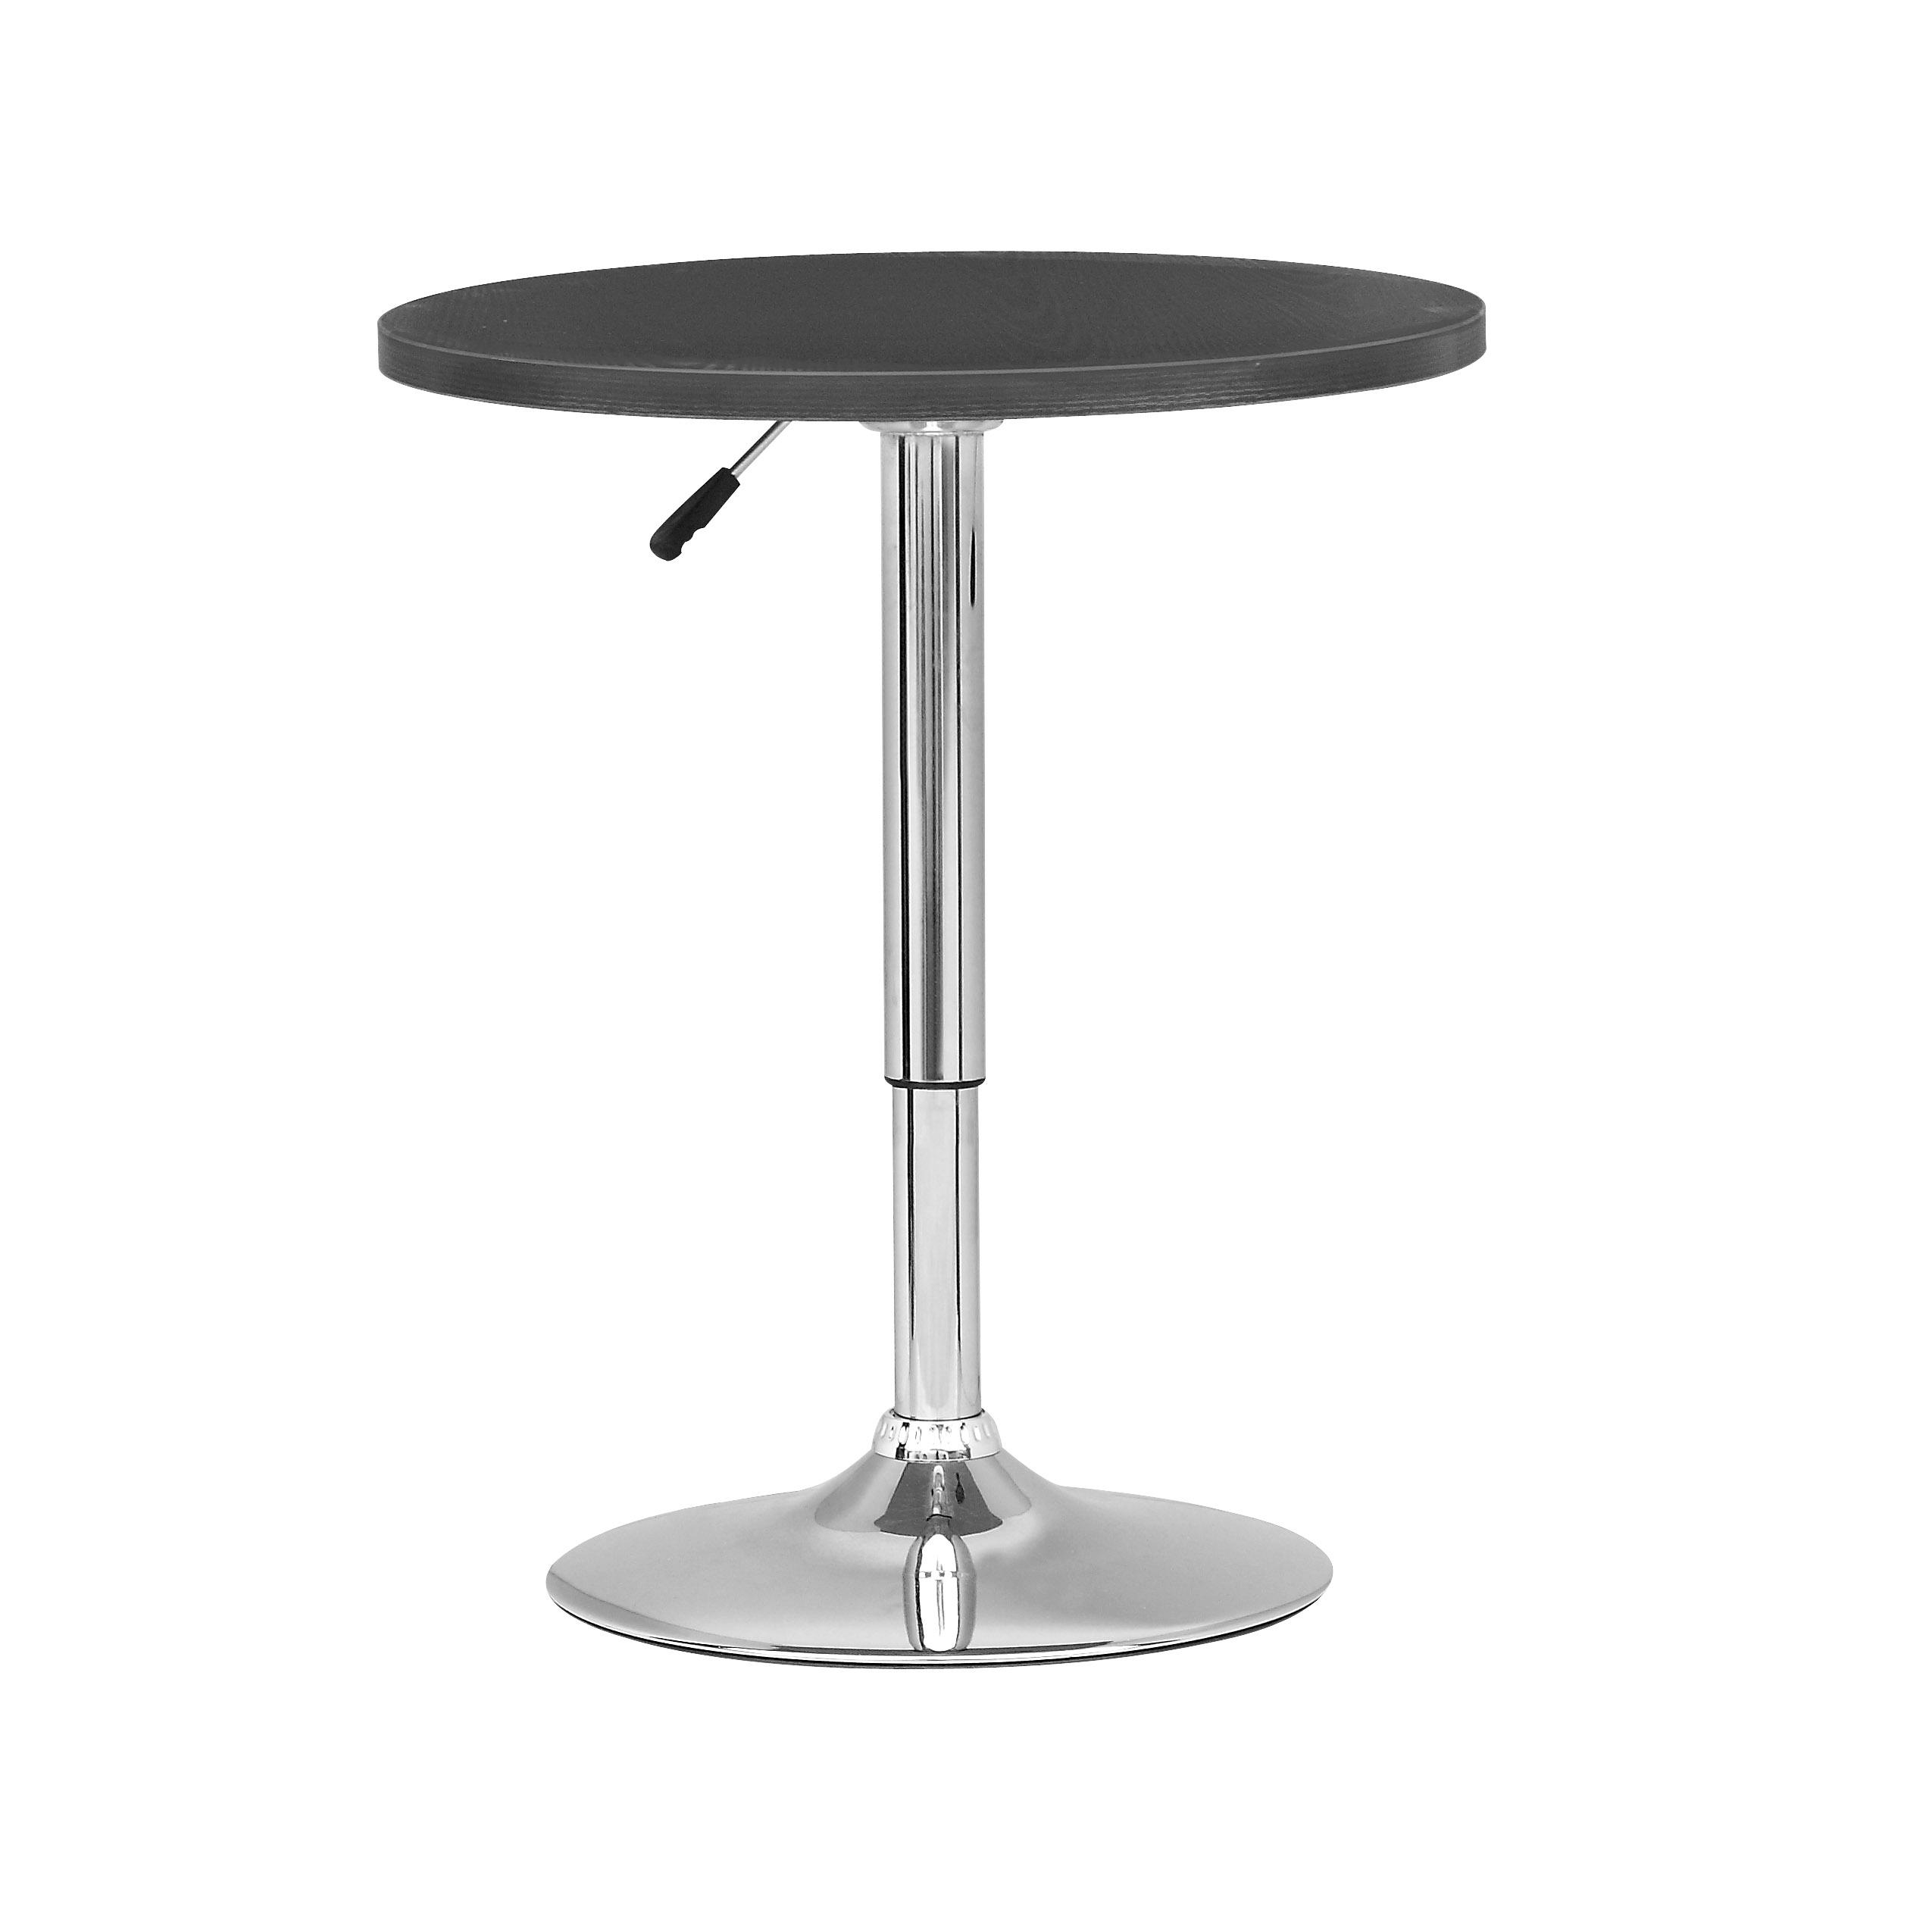 Corliving Daw 510 T Adjustable Height Round Bar Table In White Wood